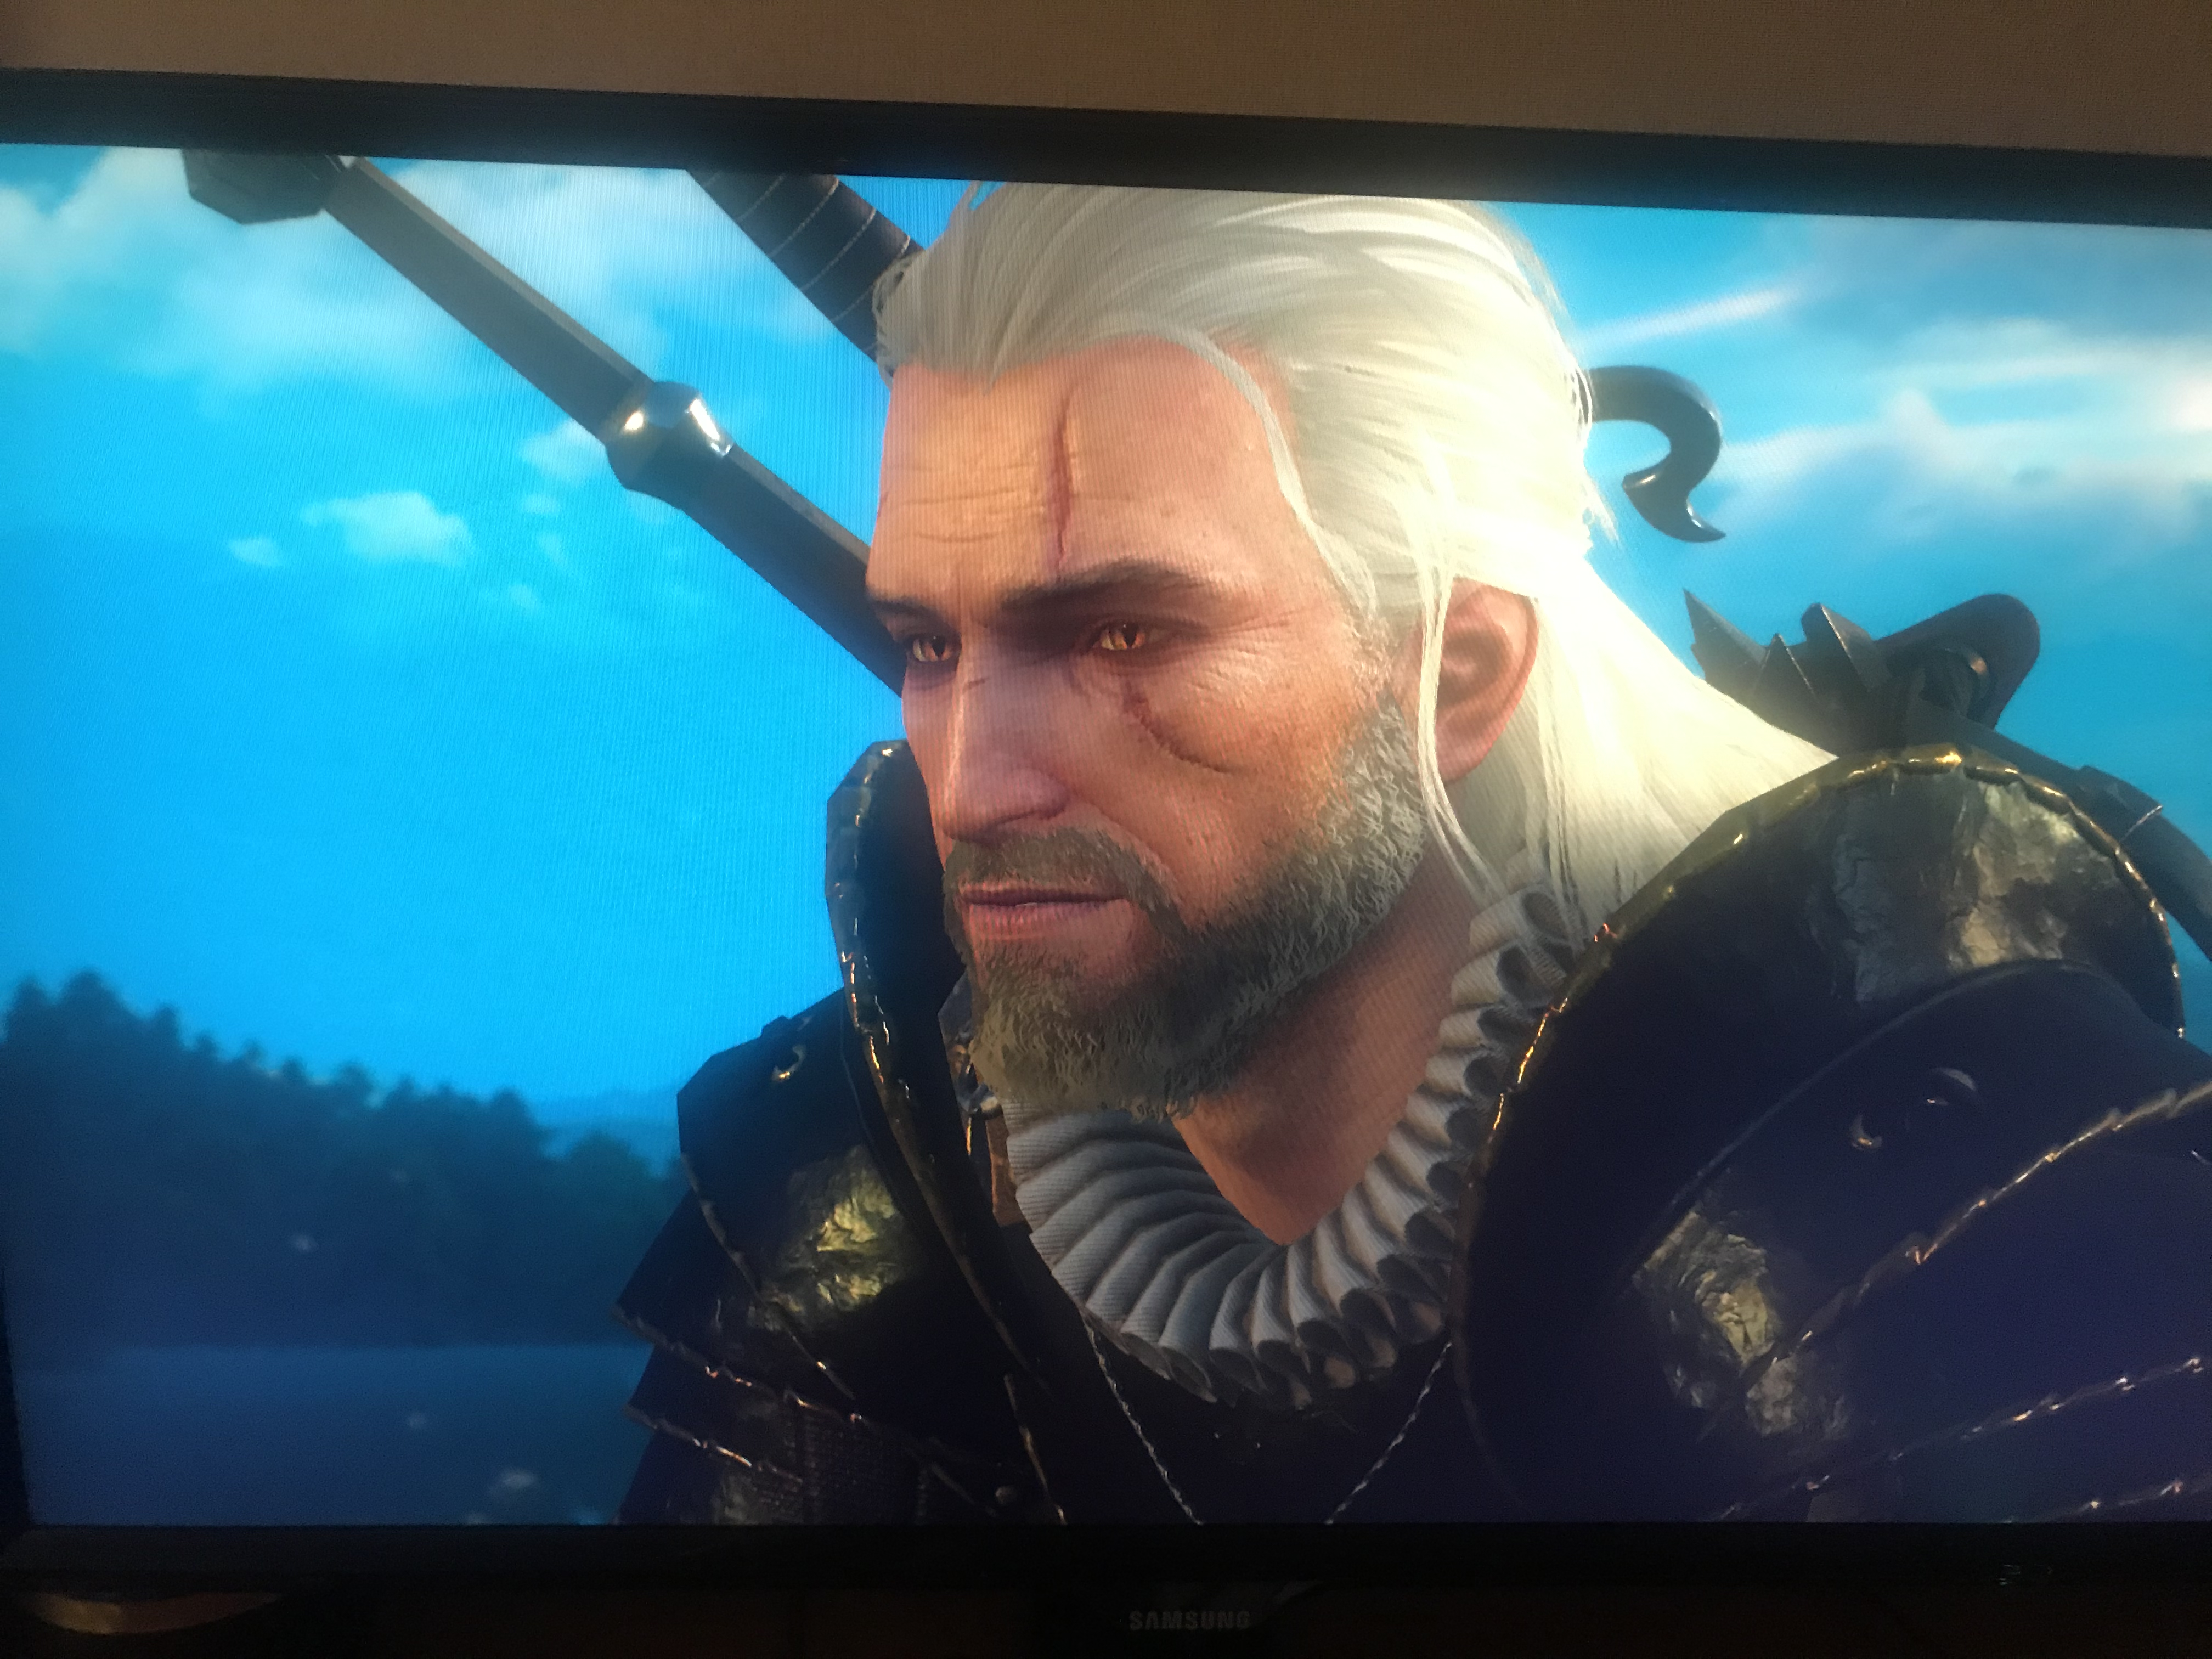 DB545217-0A70-4554-8F26-4A1B95D3B65F.JPG - Witcher 3: Wild Hunt, the